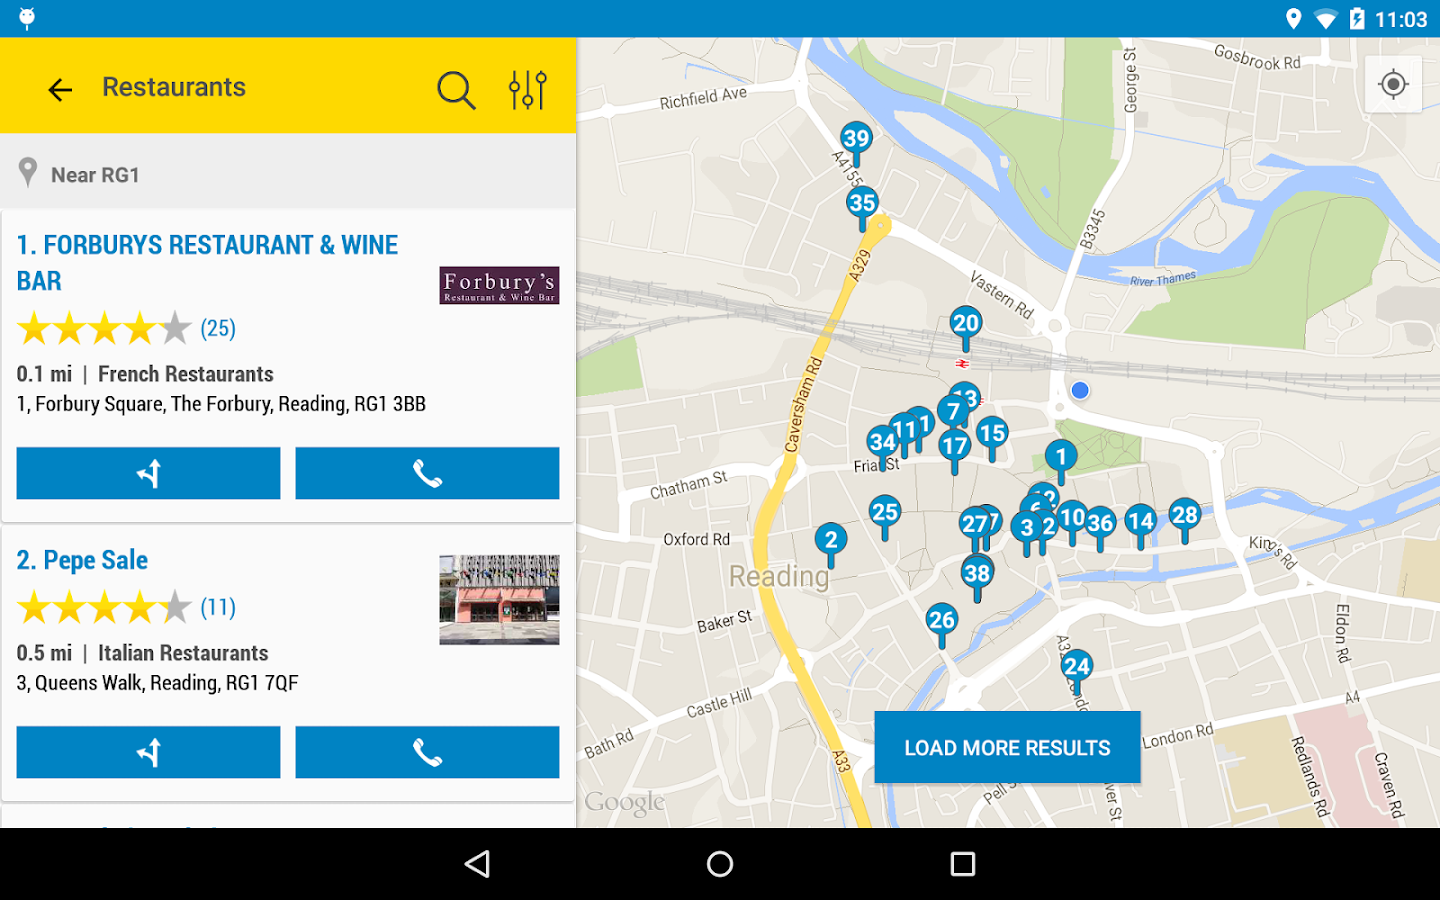 Do people really use their computer comparably to the yellow pages for local business and service searches?